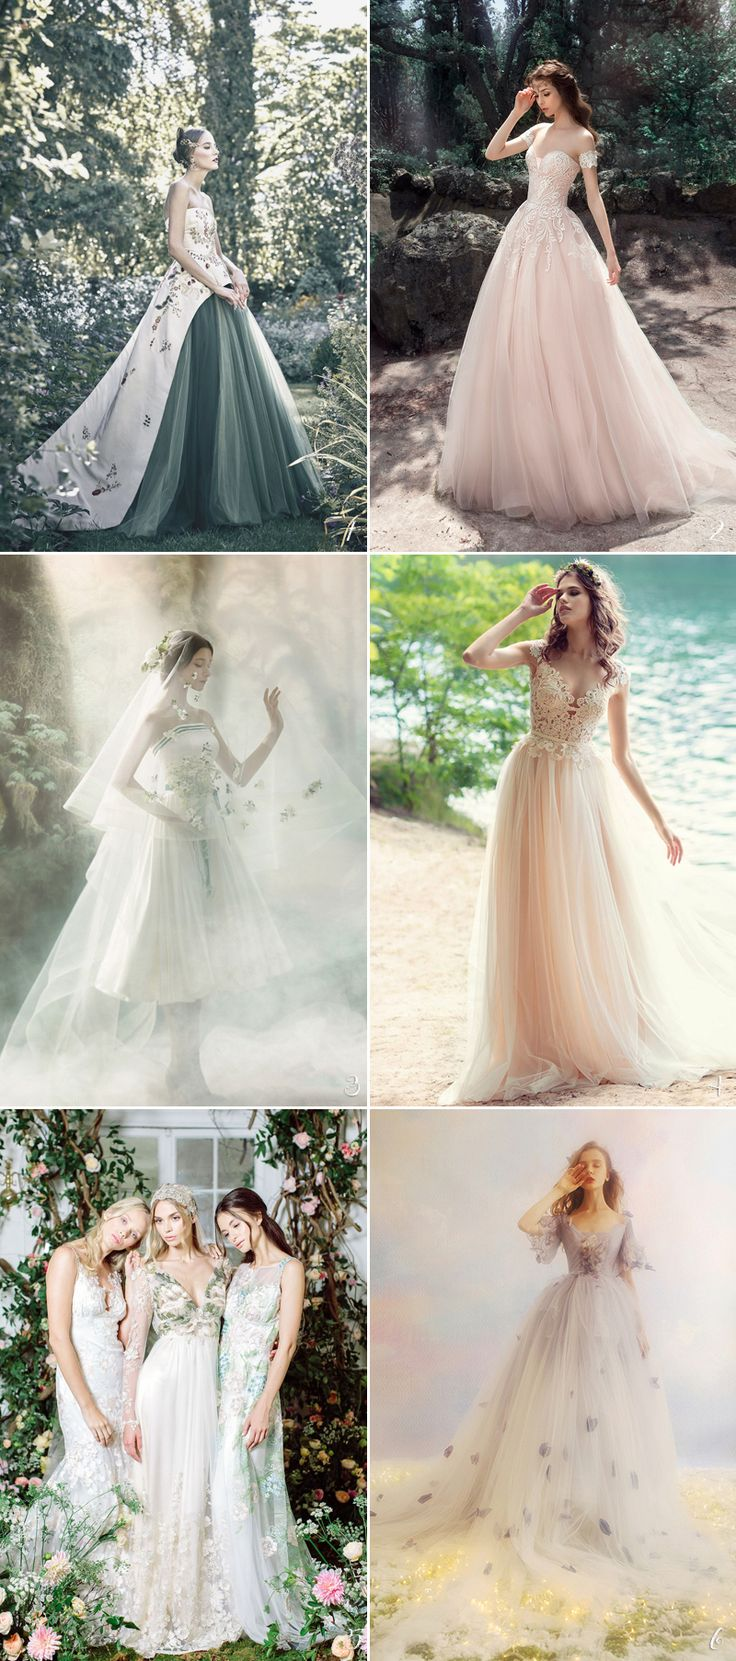 30 Perfect Gowns For Every Type of Outdoor Wedding This Summer! Whimsical Woodland Wedding